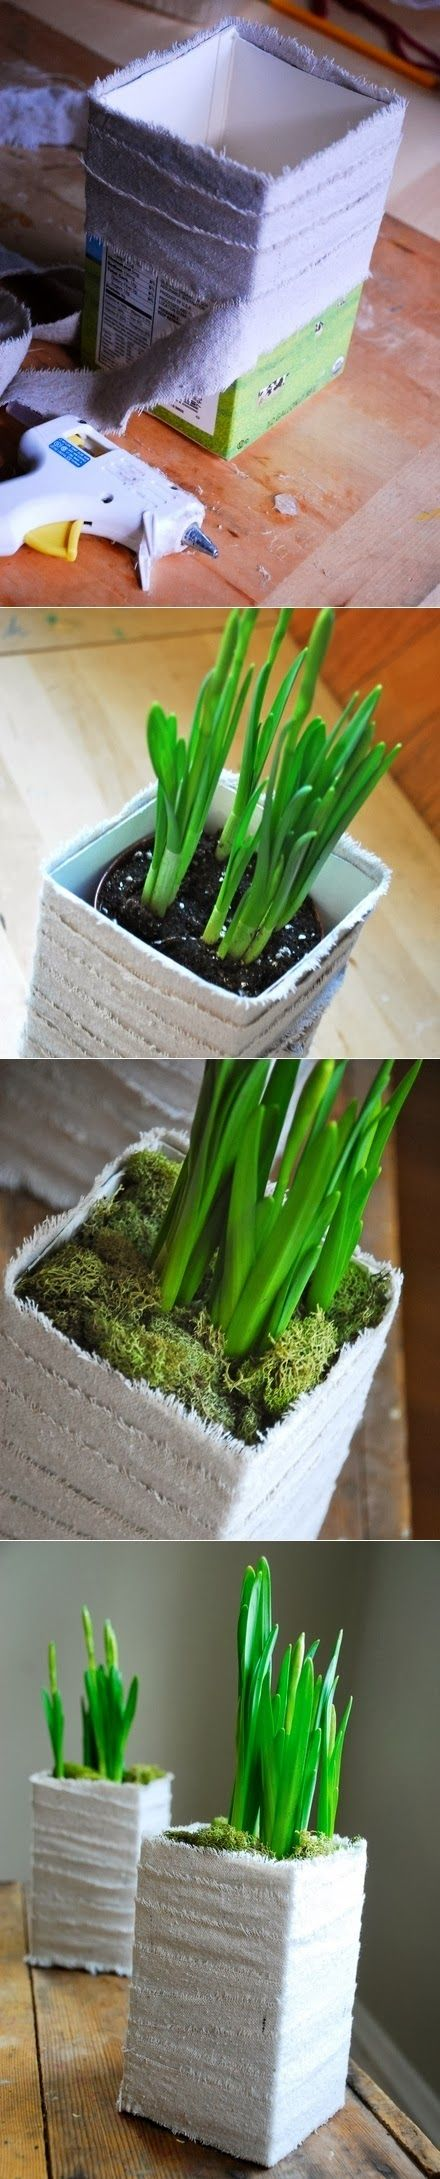 DIY Milk Carton Planter http://www.gardeningworld.org/2013/12/diy-milk-carton-planter.html